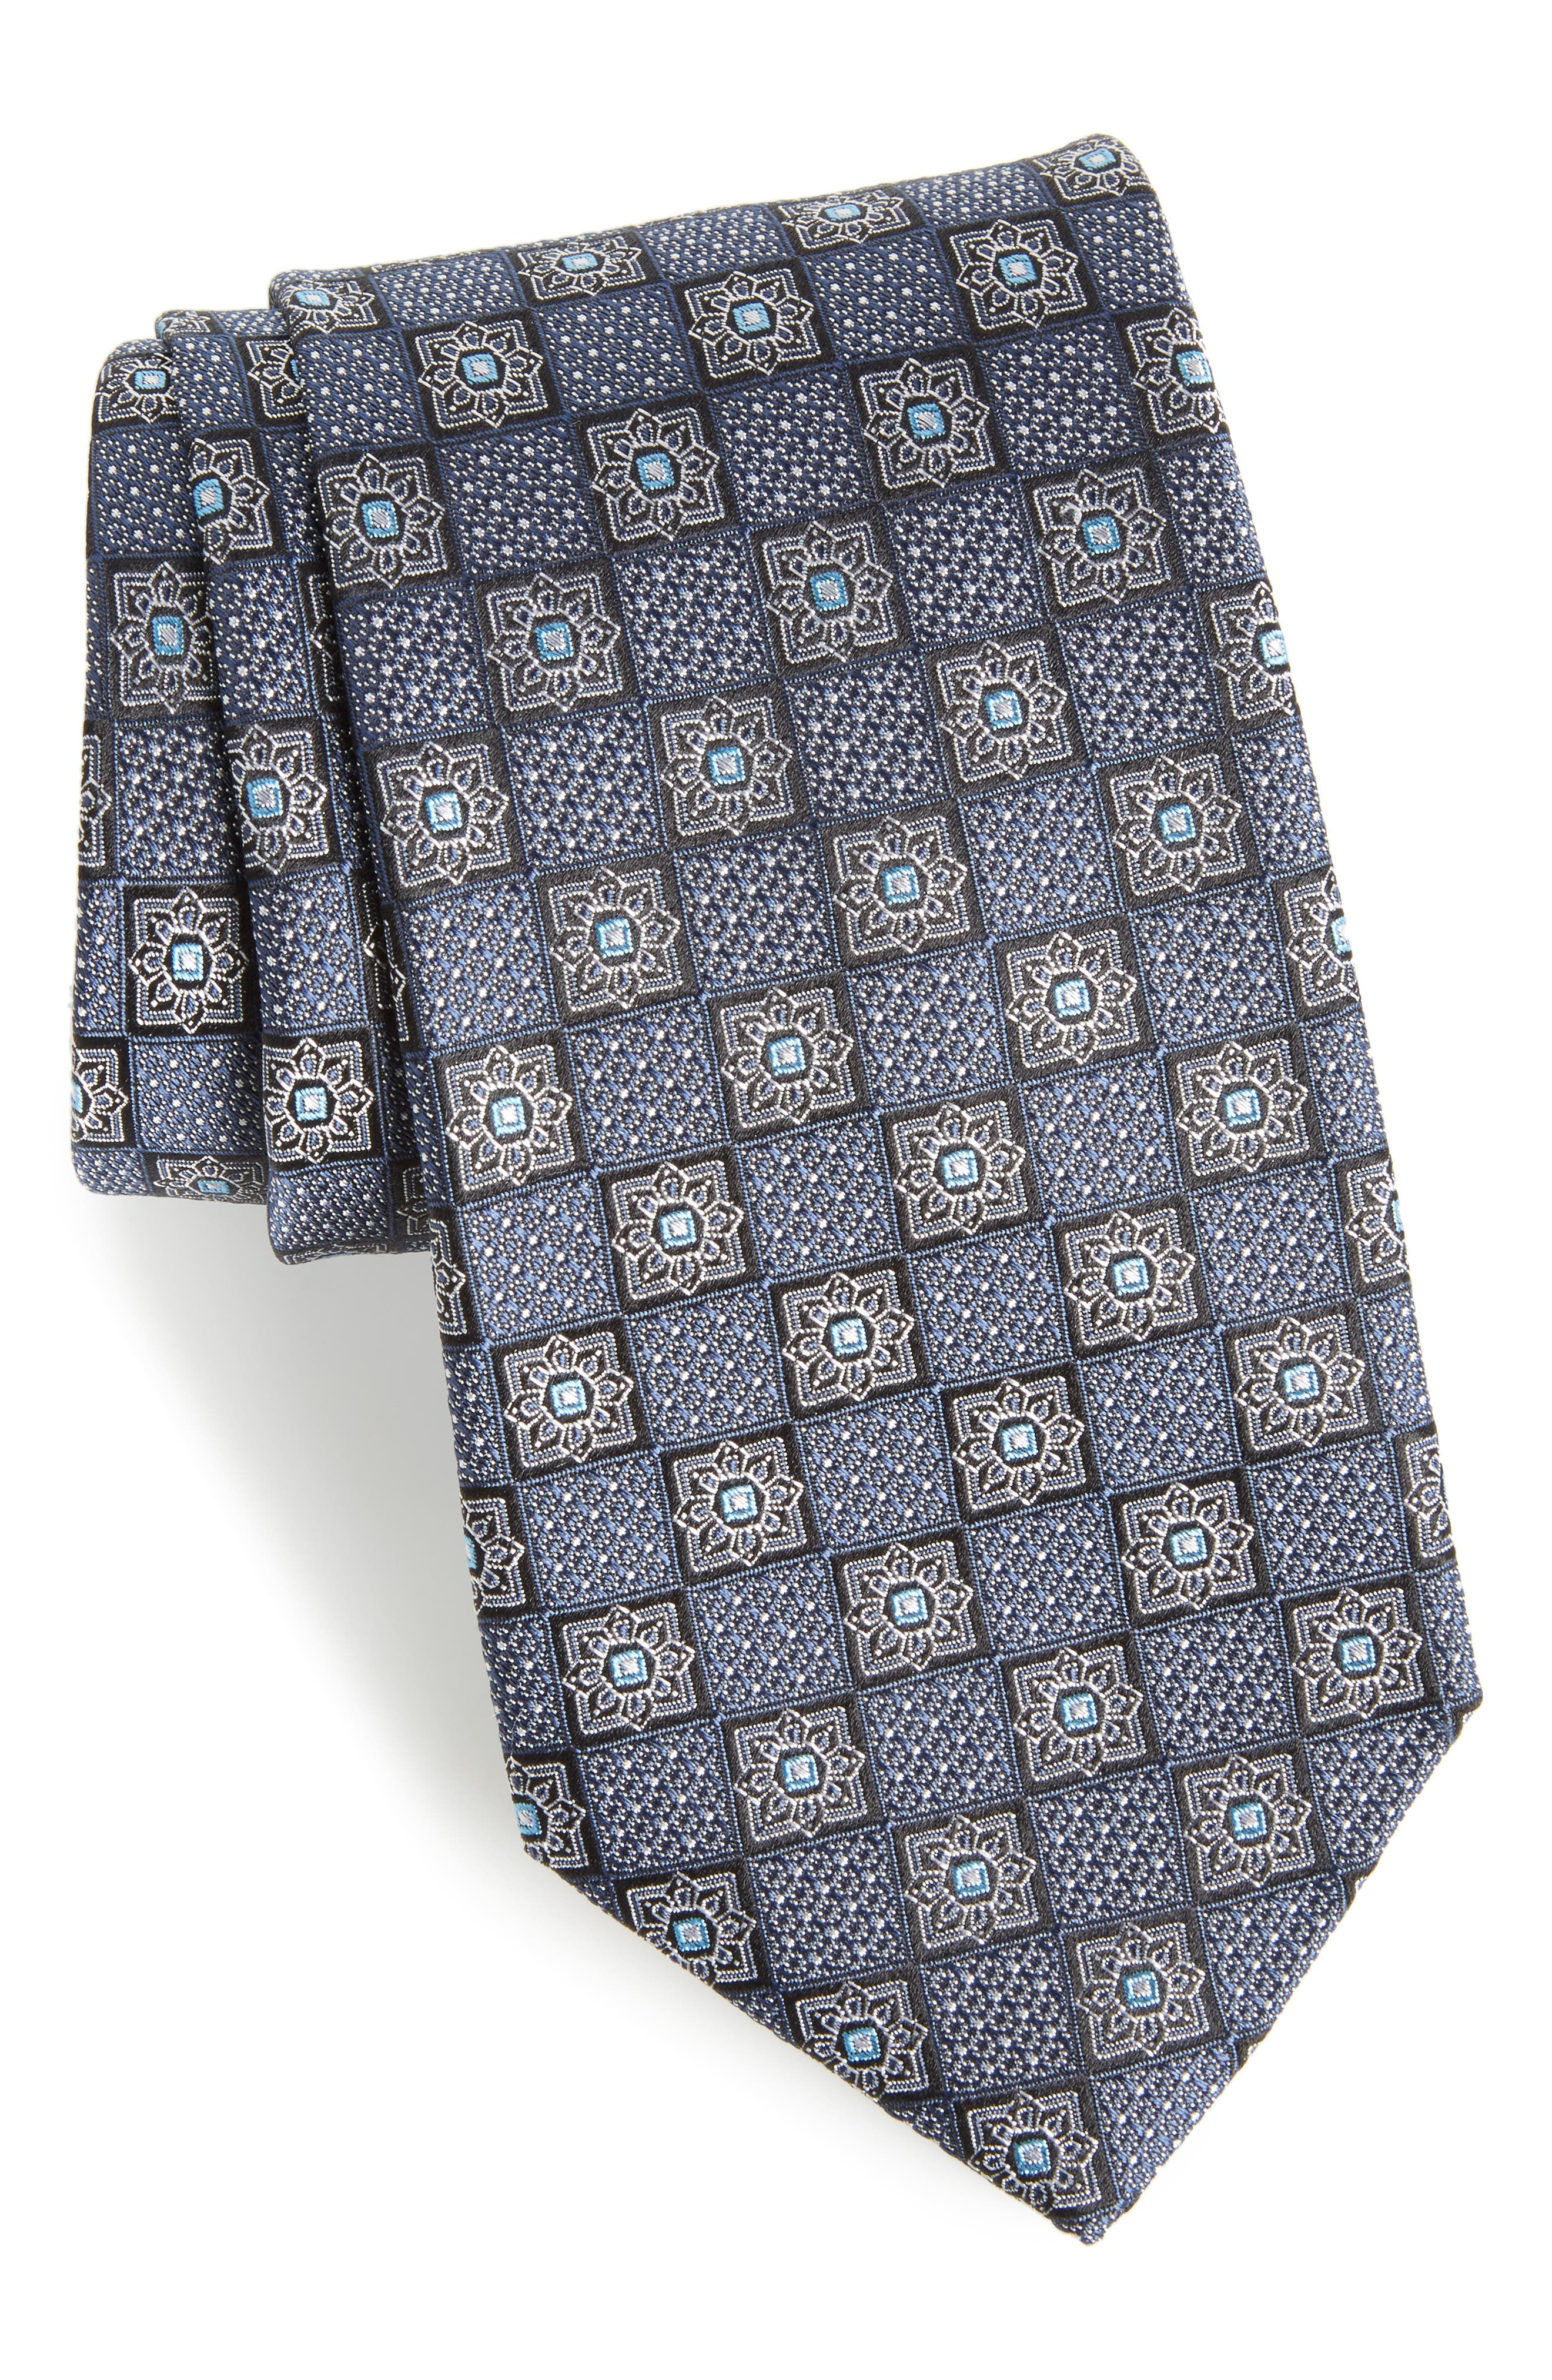 Settala Medallion Silk Tie,                         Main,                         color, 001